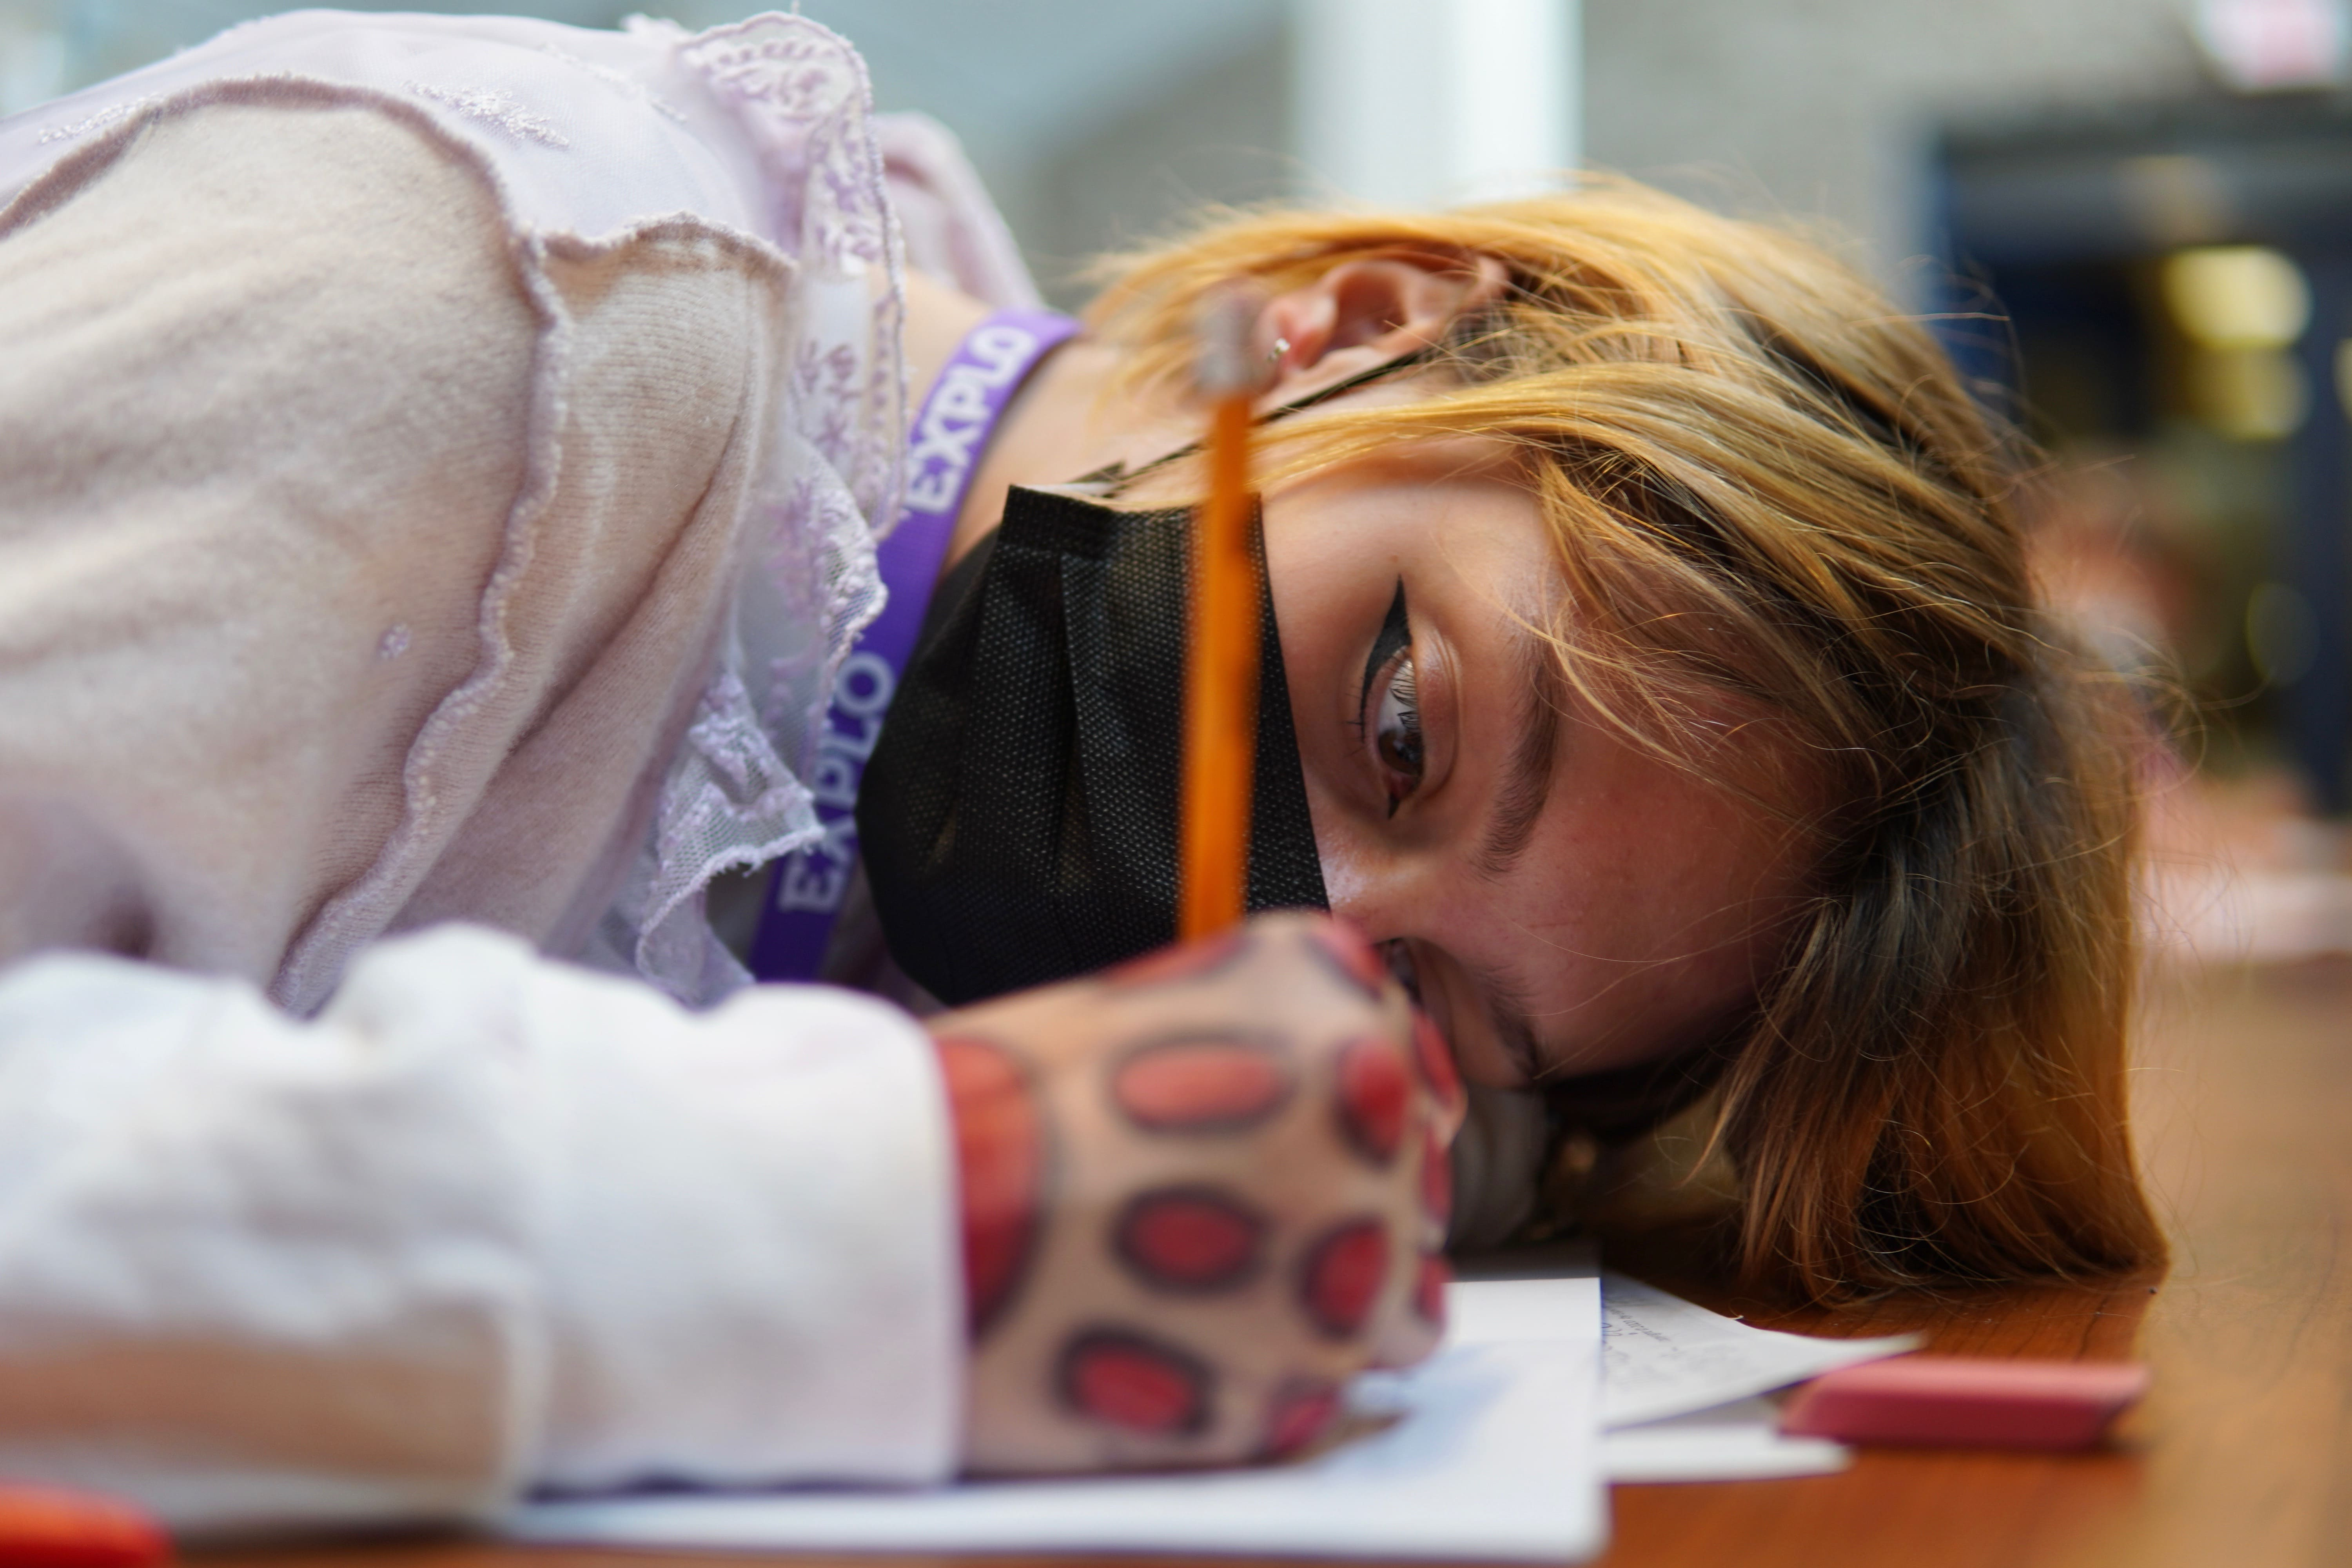 A student with blonde hair lays their head on the table and writes, eyes focused.